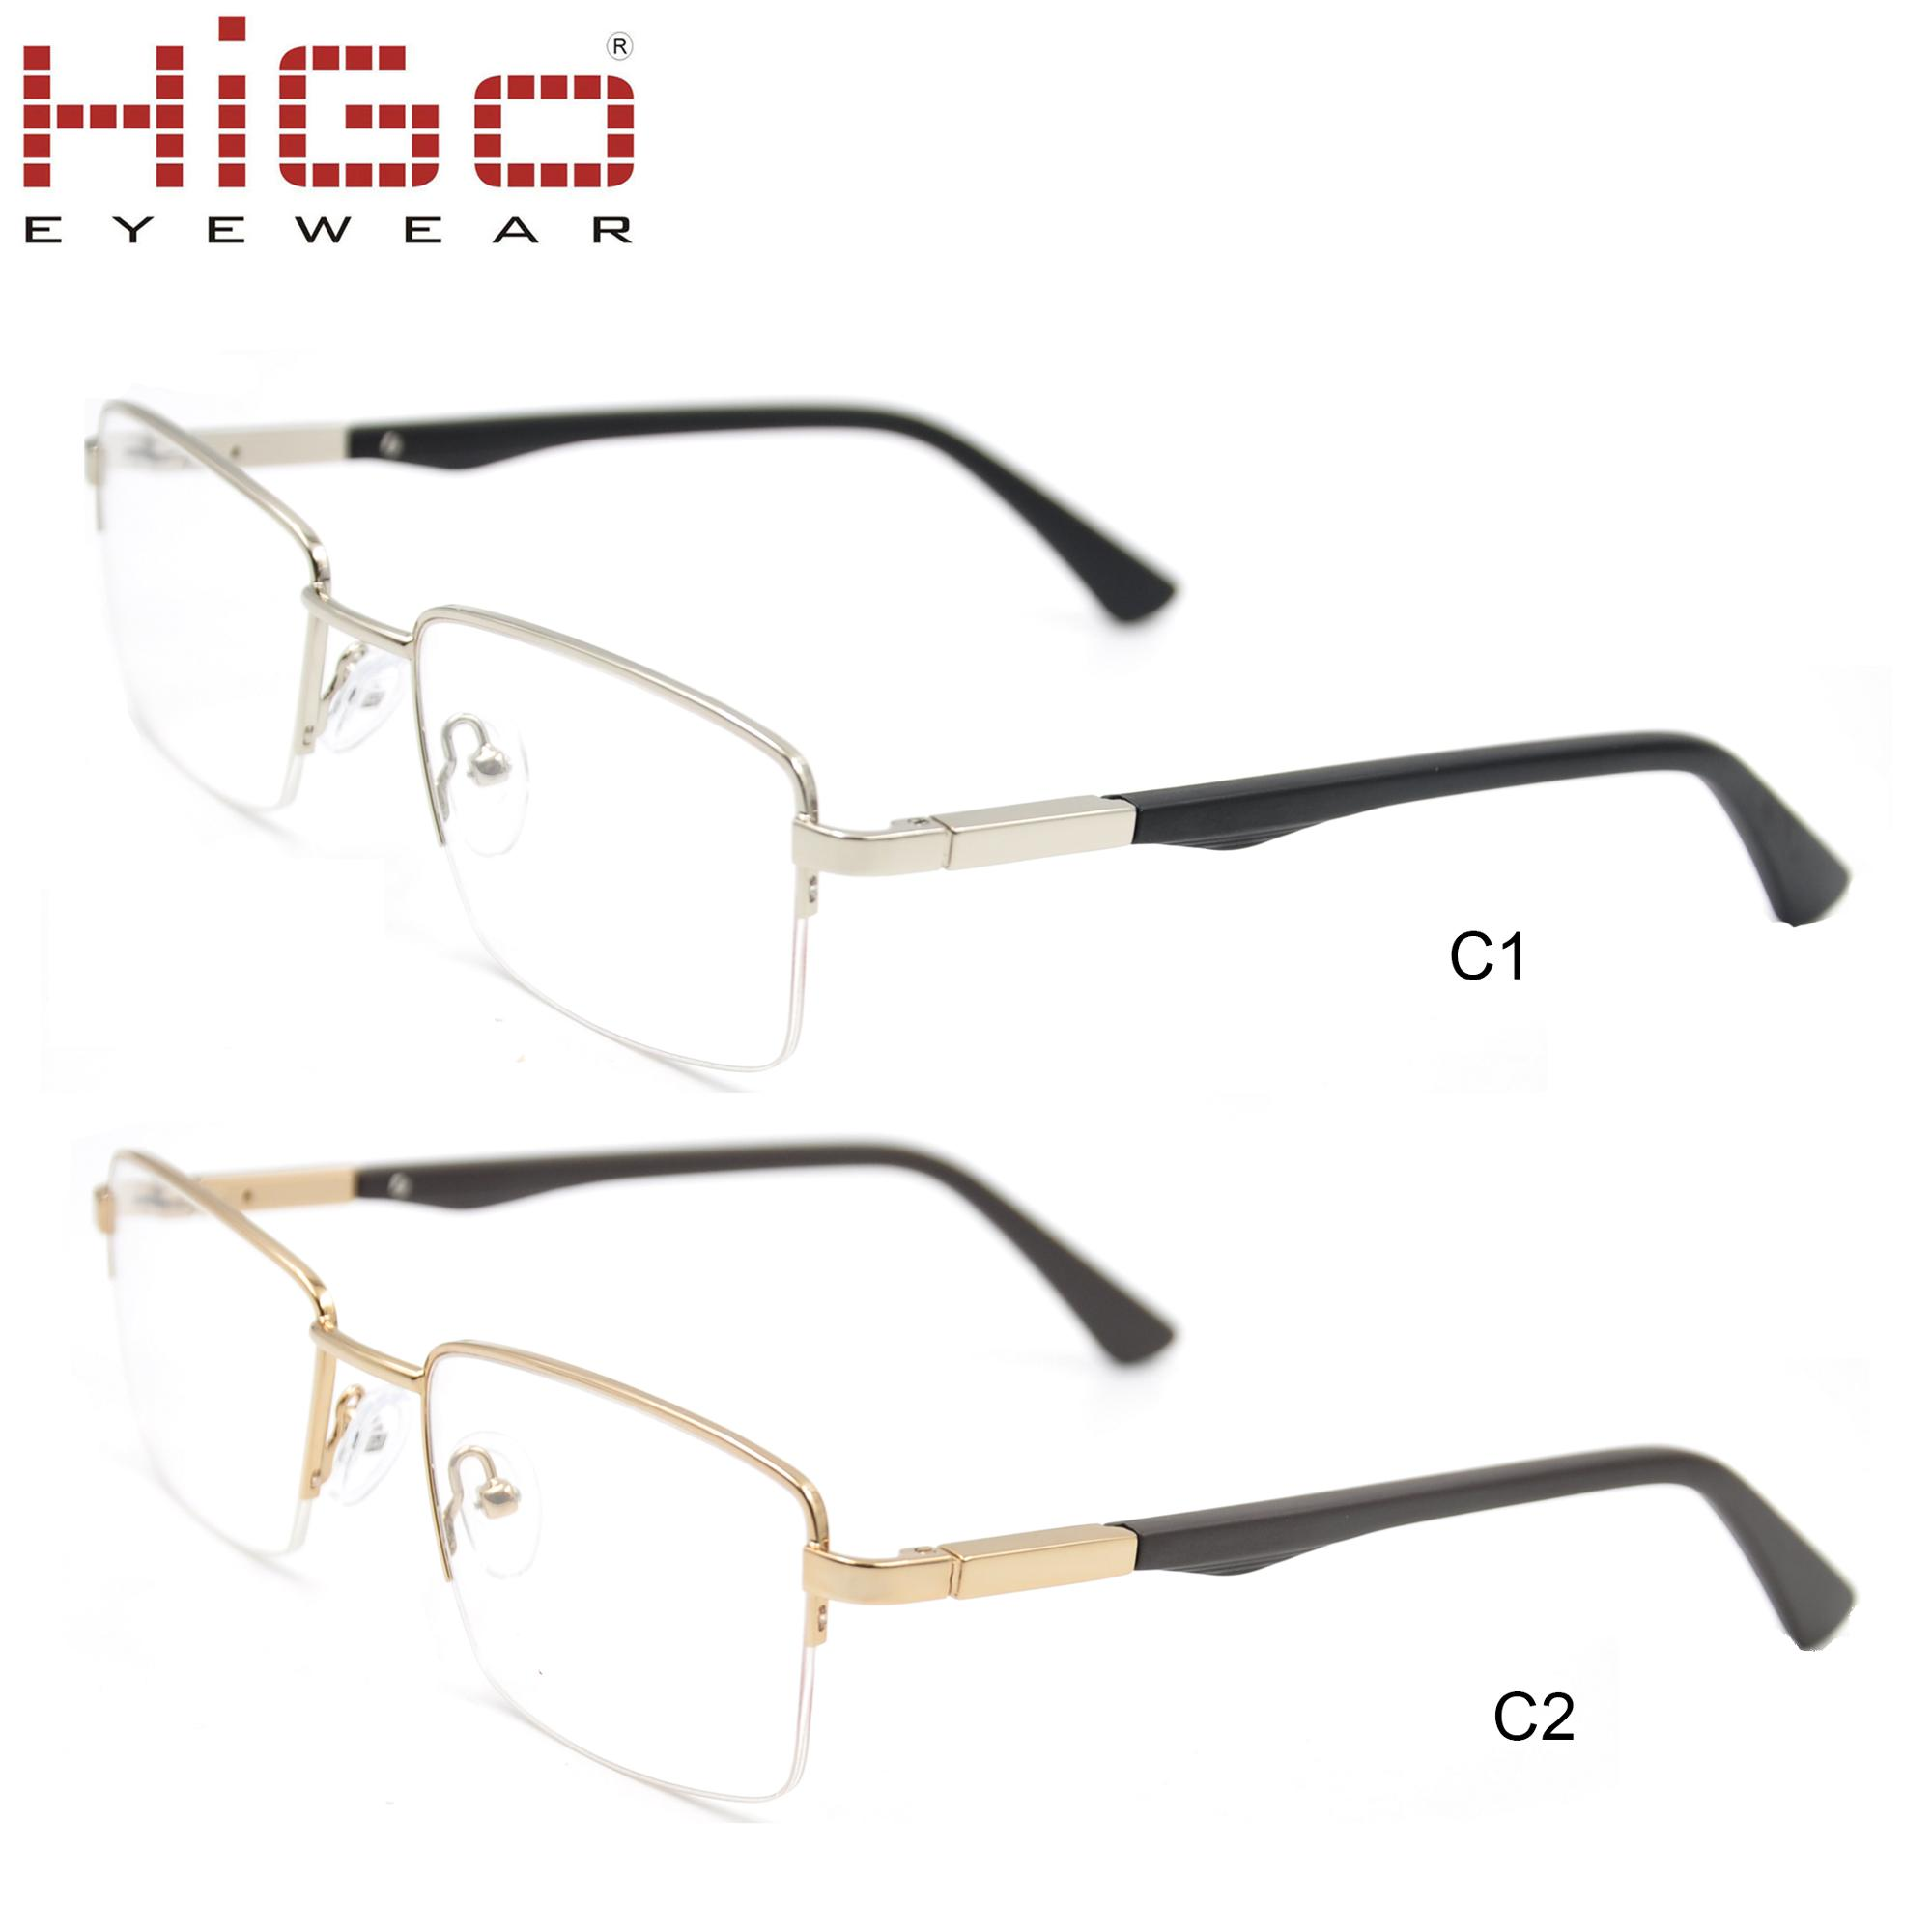 412c3ff6ee 2018 new arrivals ready stock spectacles glasses metal optical frame with good  price manufacturers in China